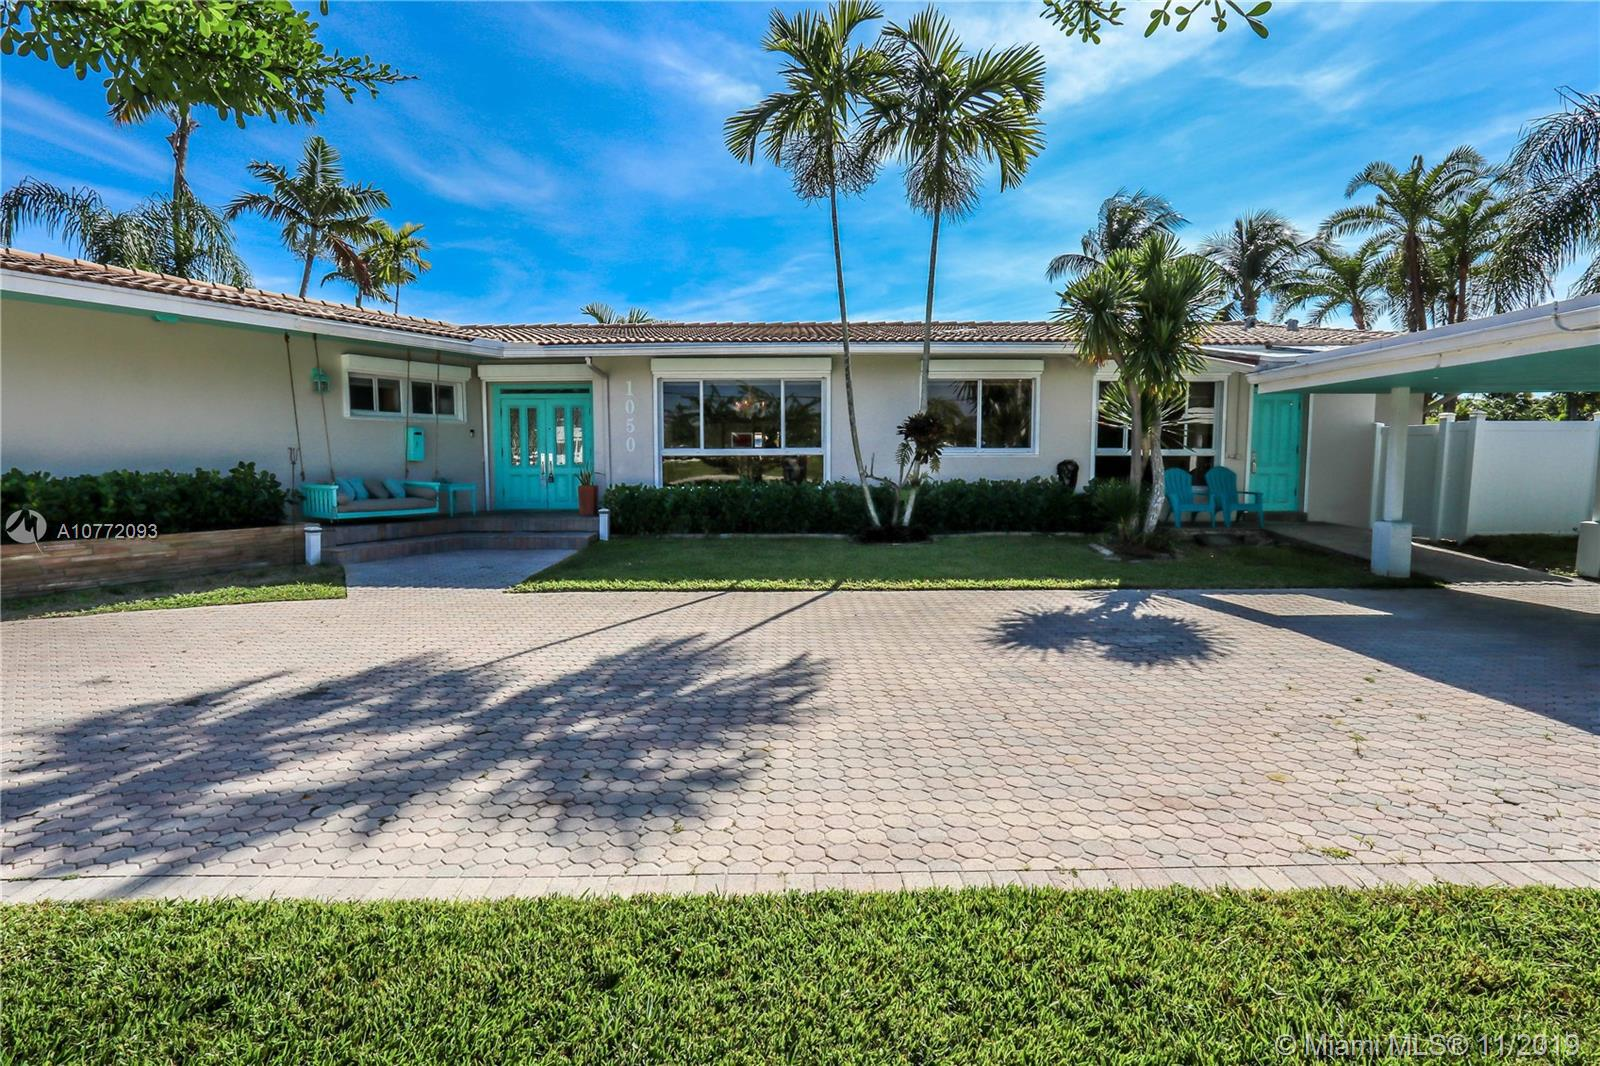 1050 S Southlake Dr, Hollywood, FL 33019 | $1,499,000 ...